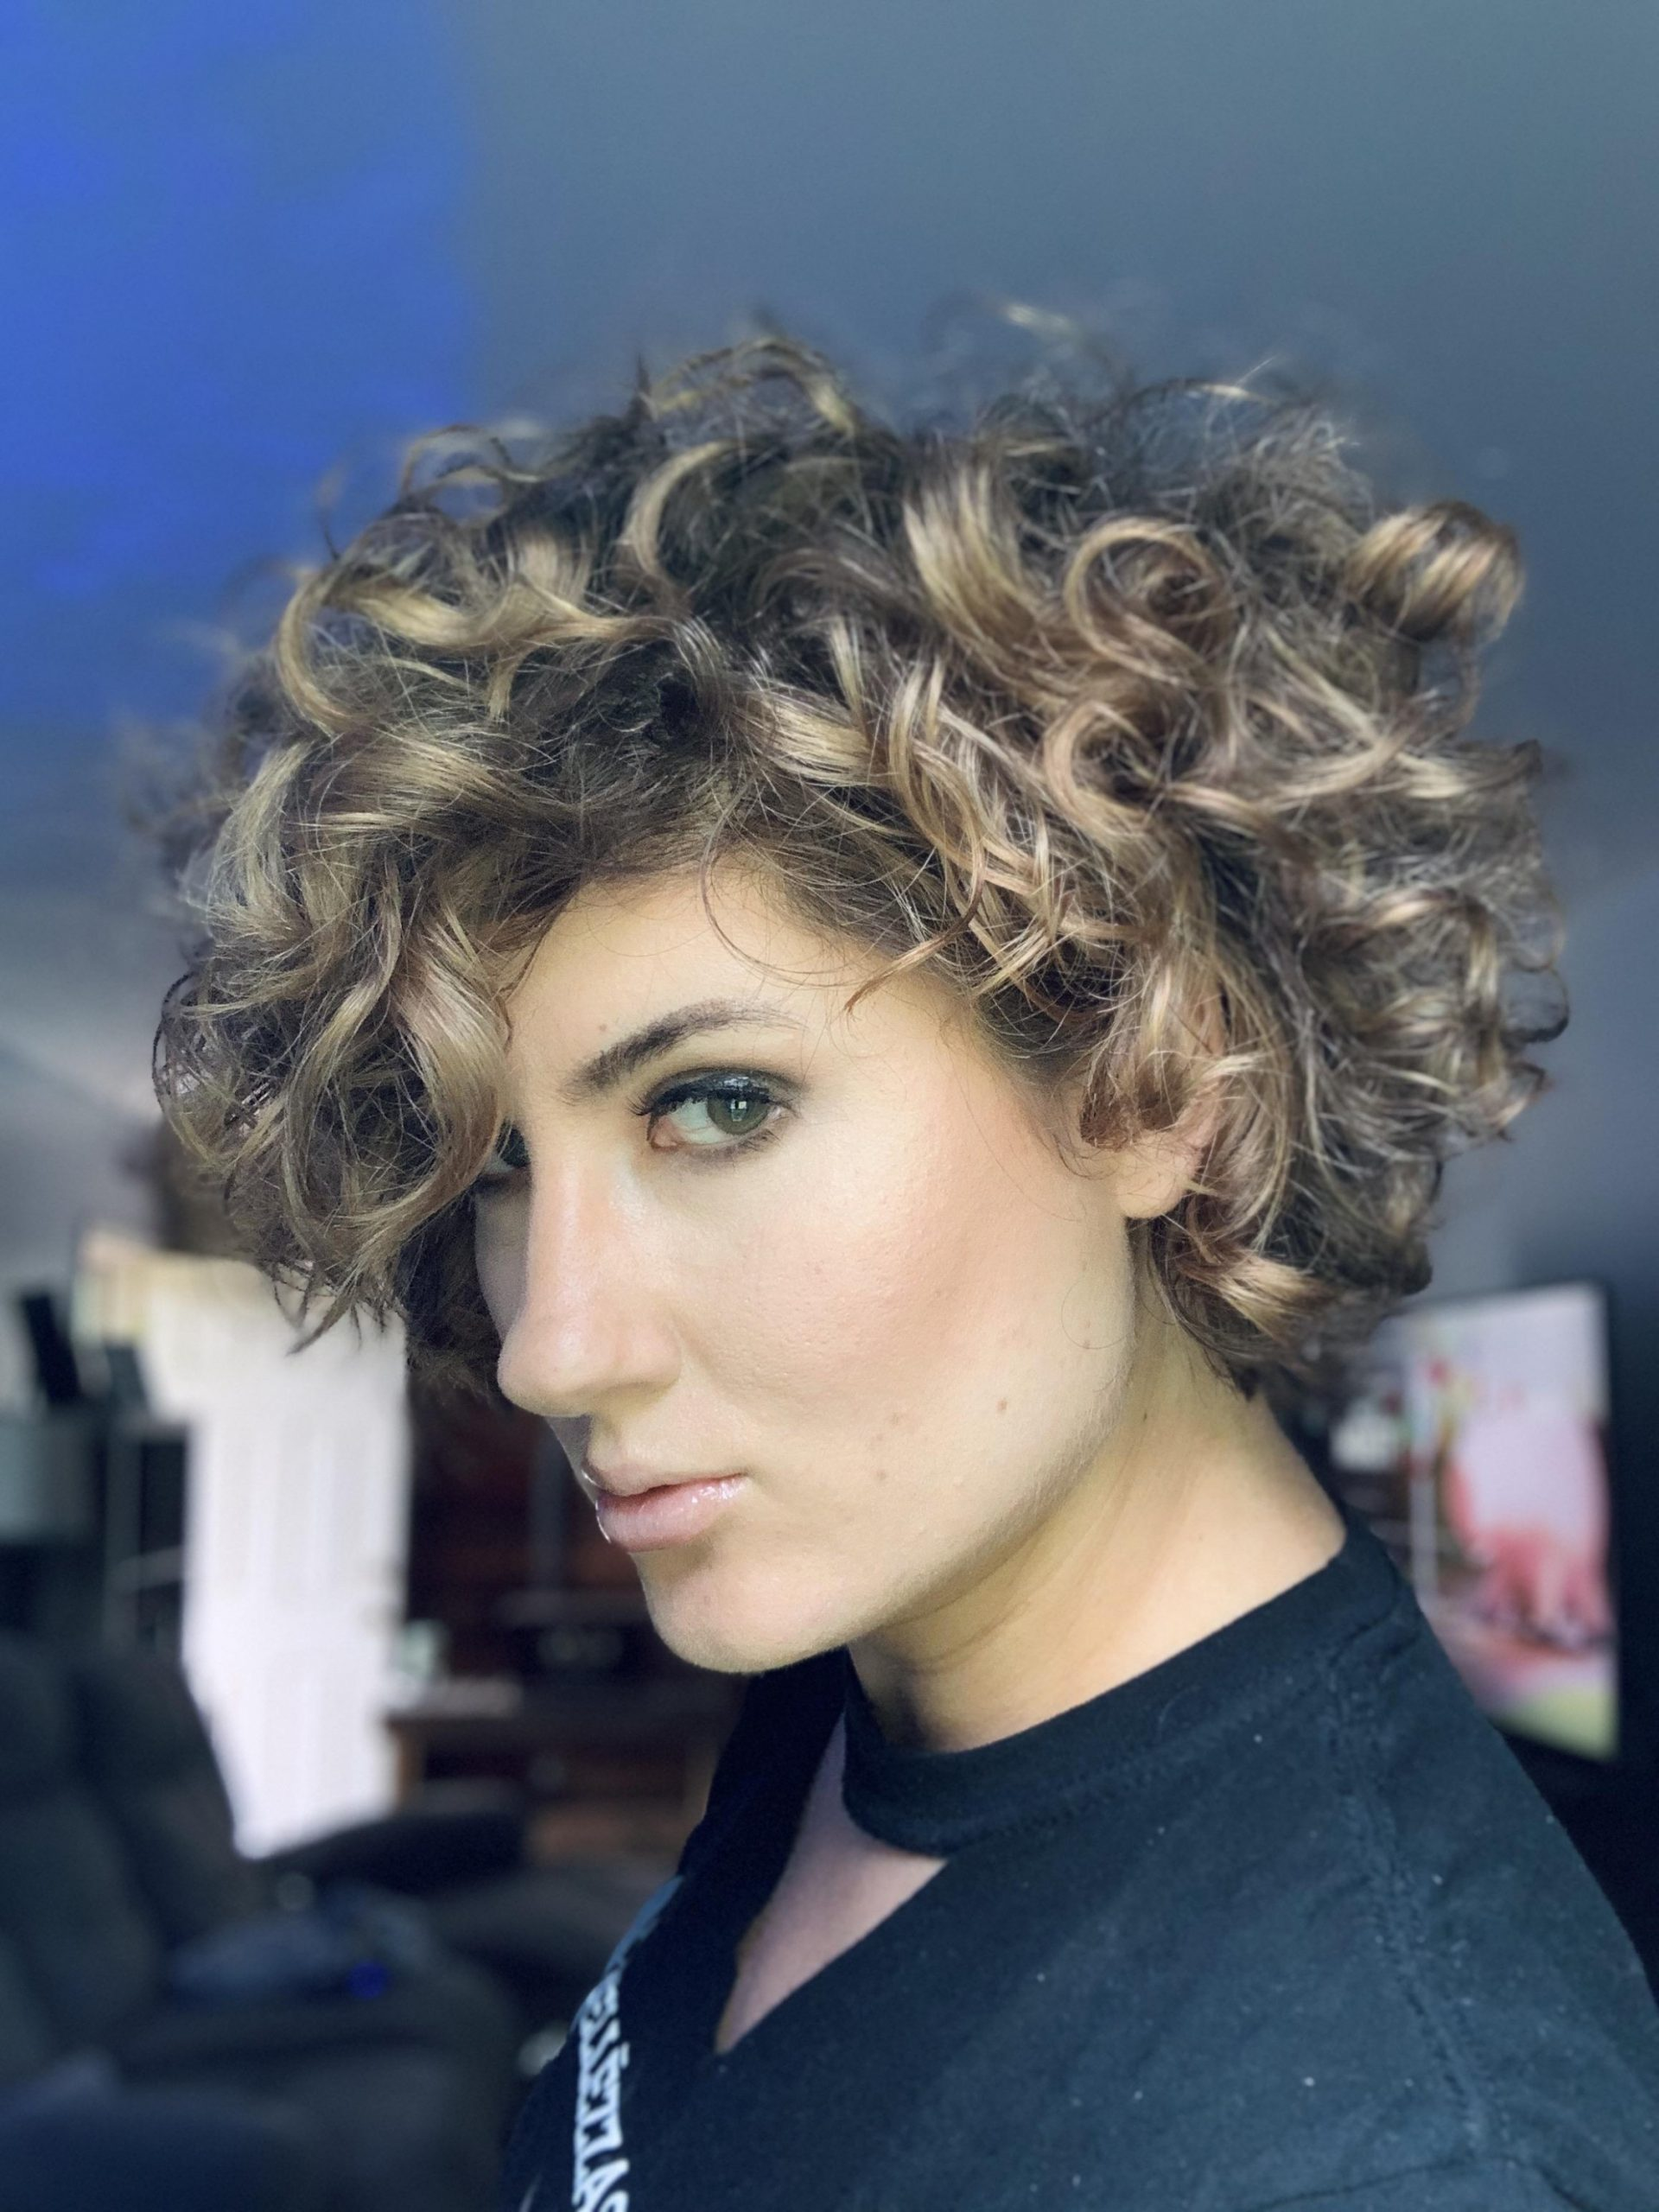 Growling out my curly pixie, now it's a bob-ish, haven't had long